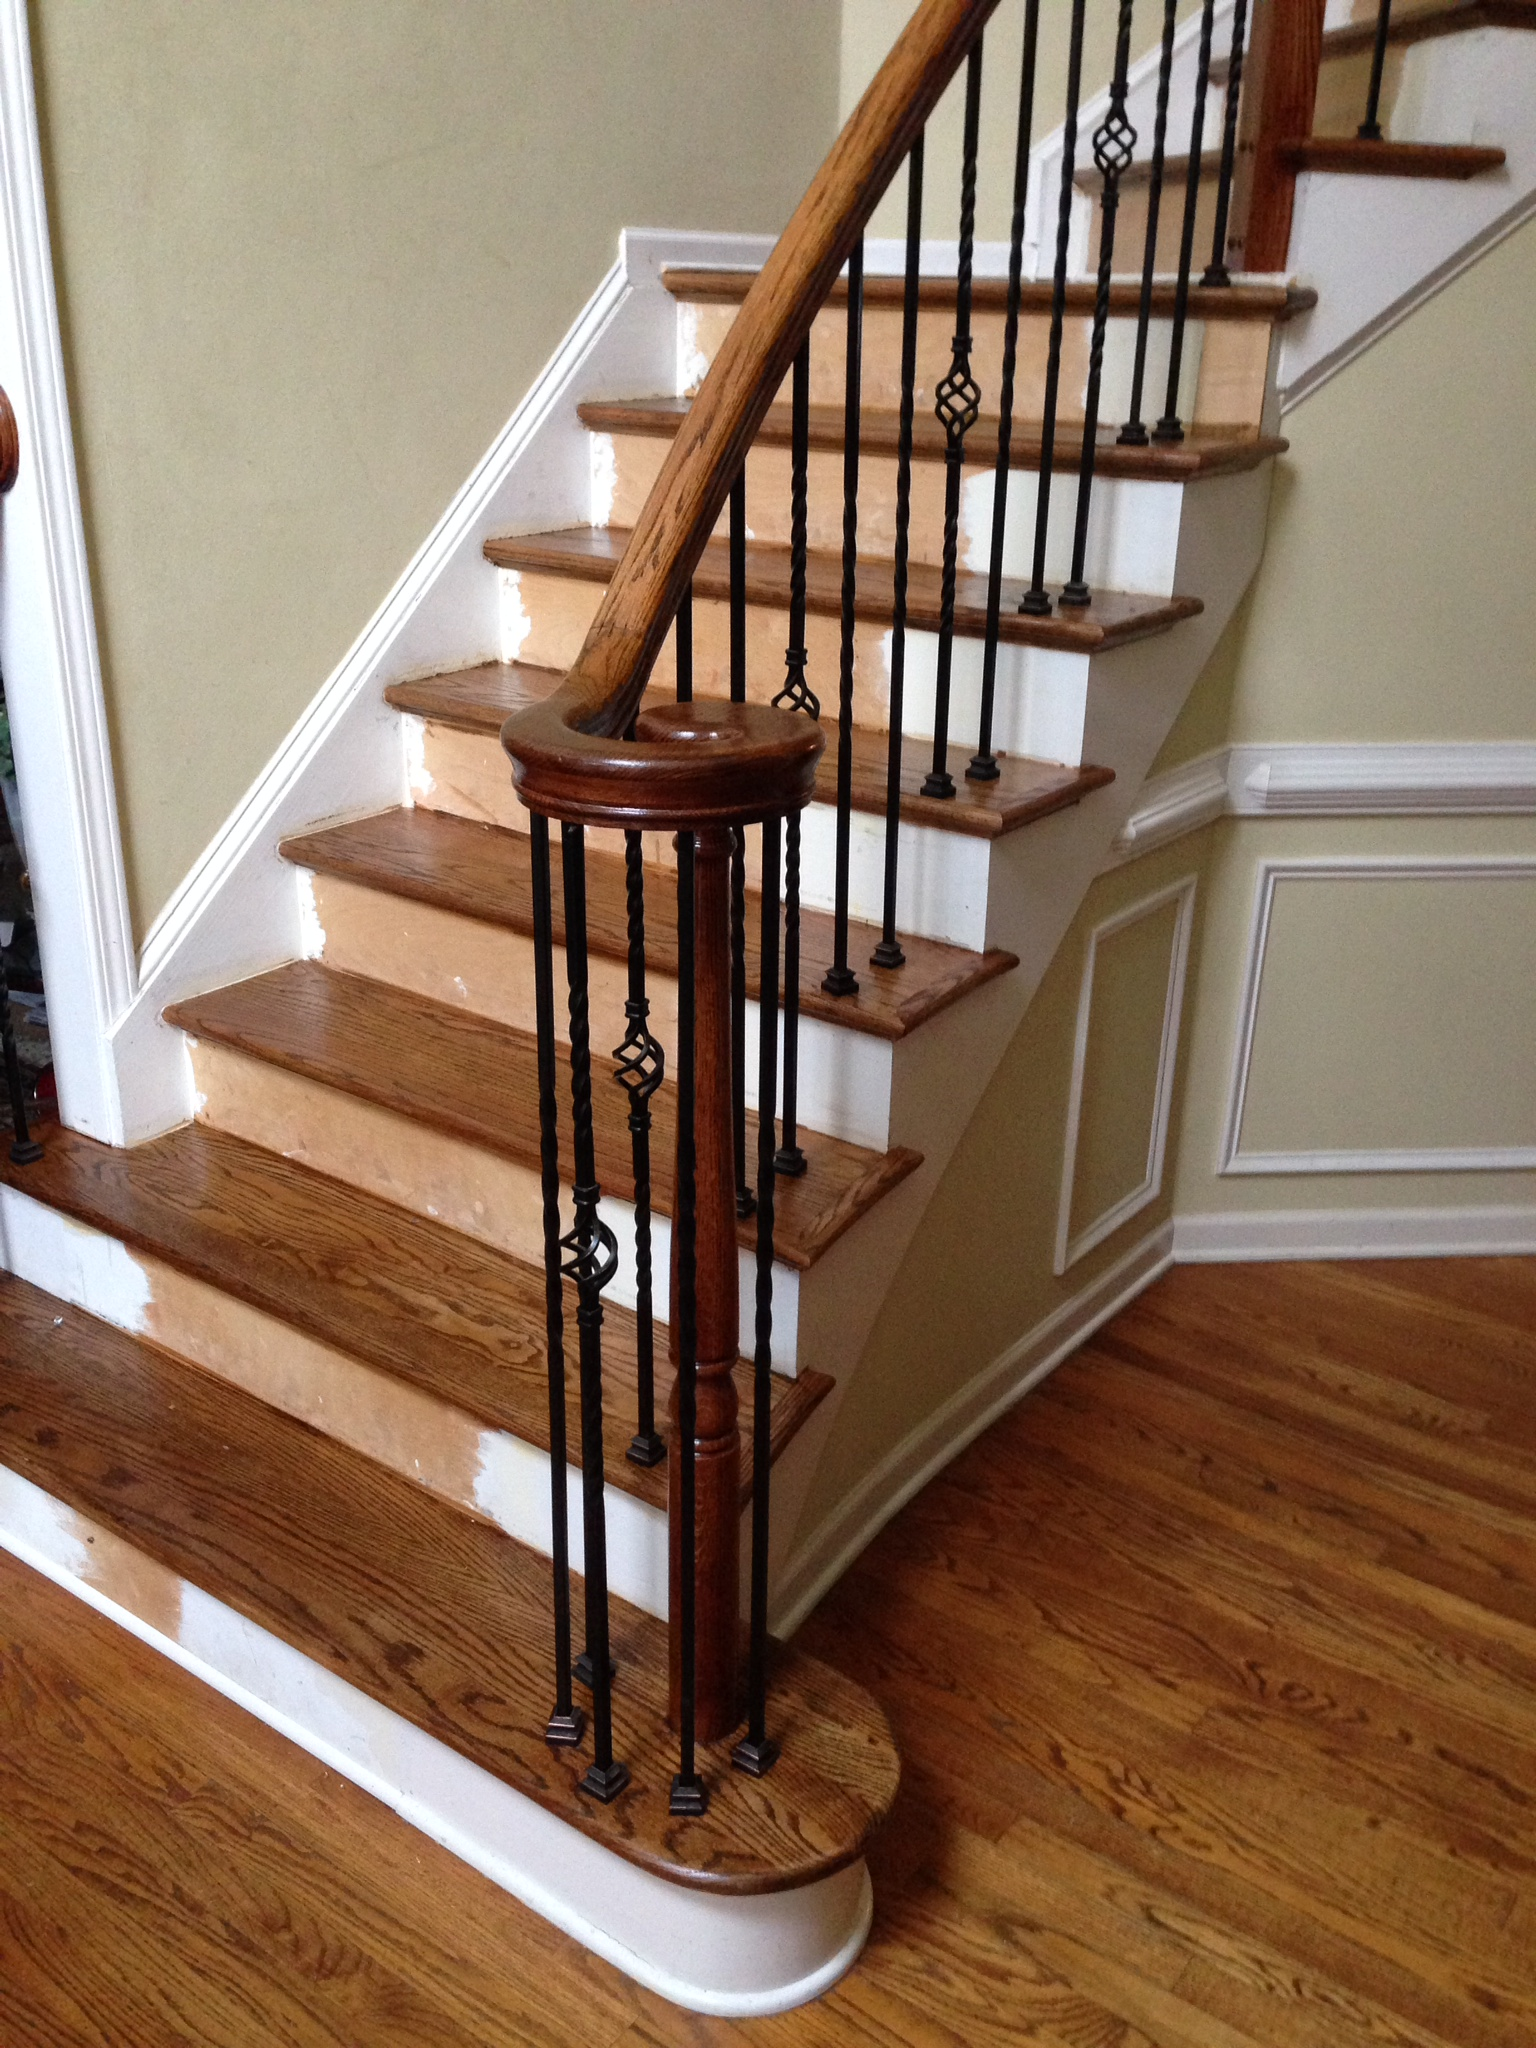 Aspects of Getting a New Staircase